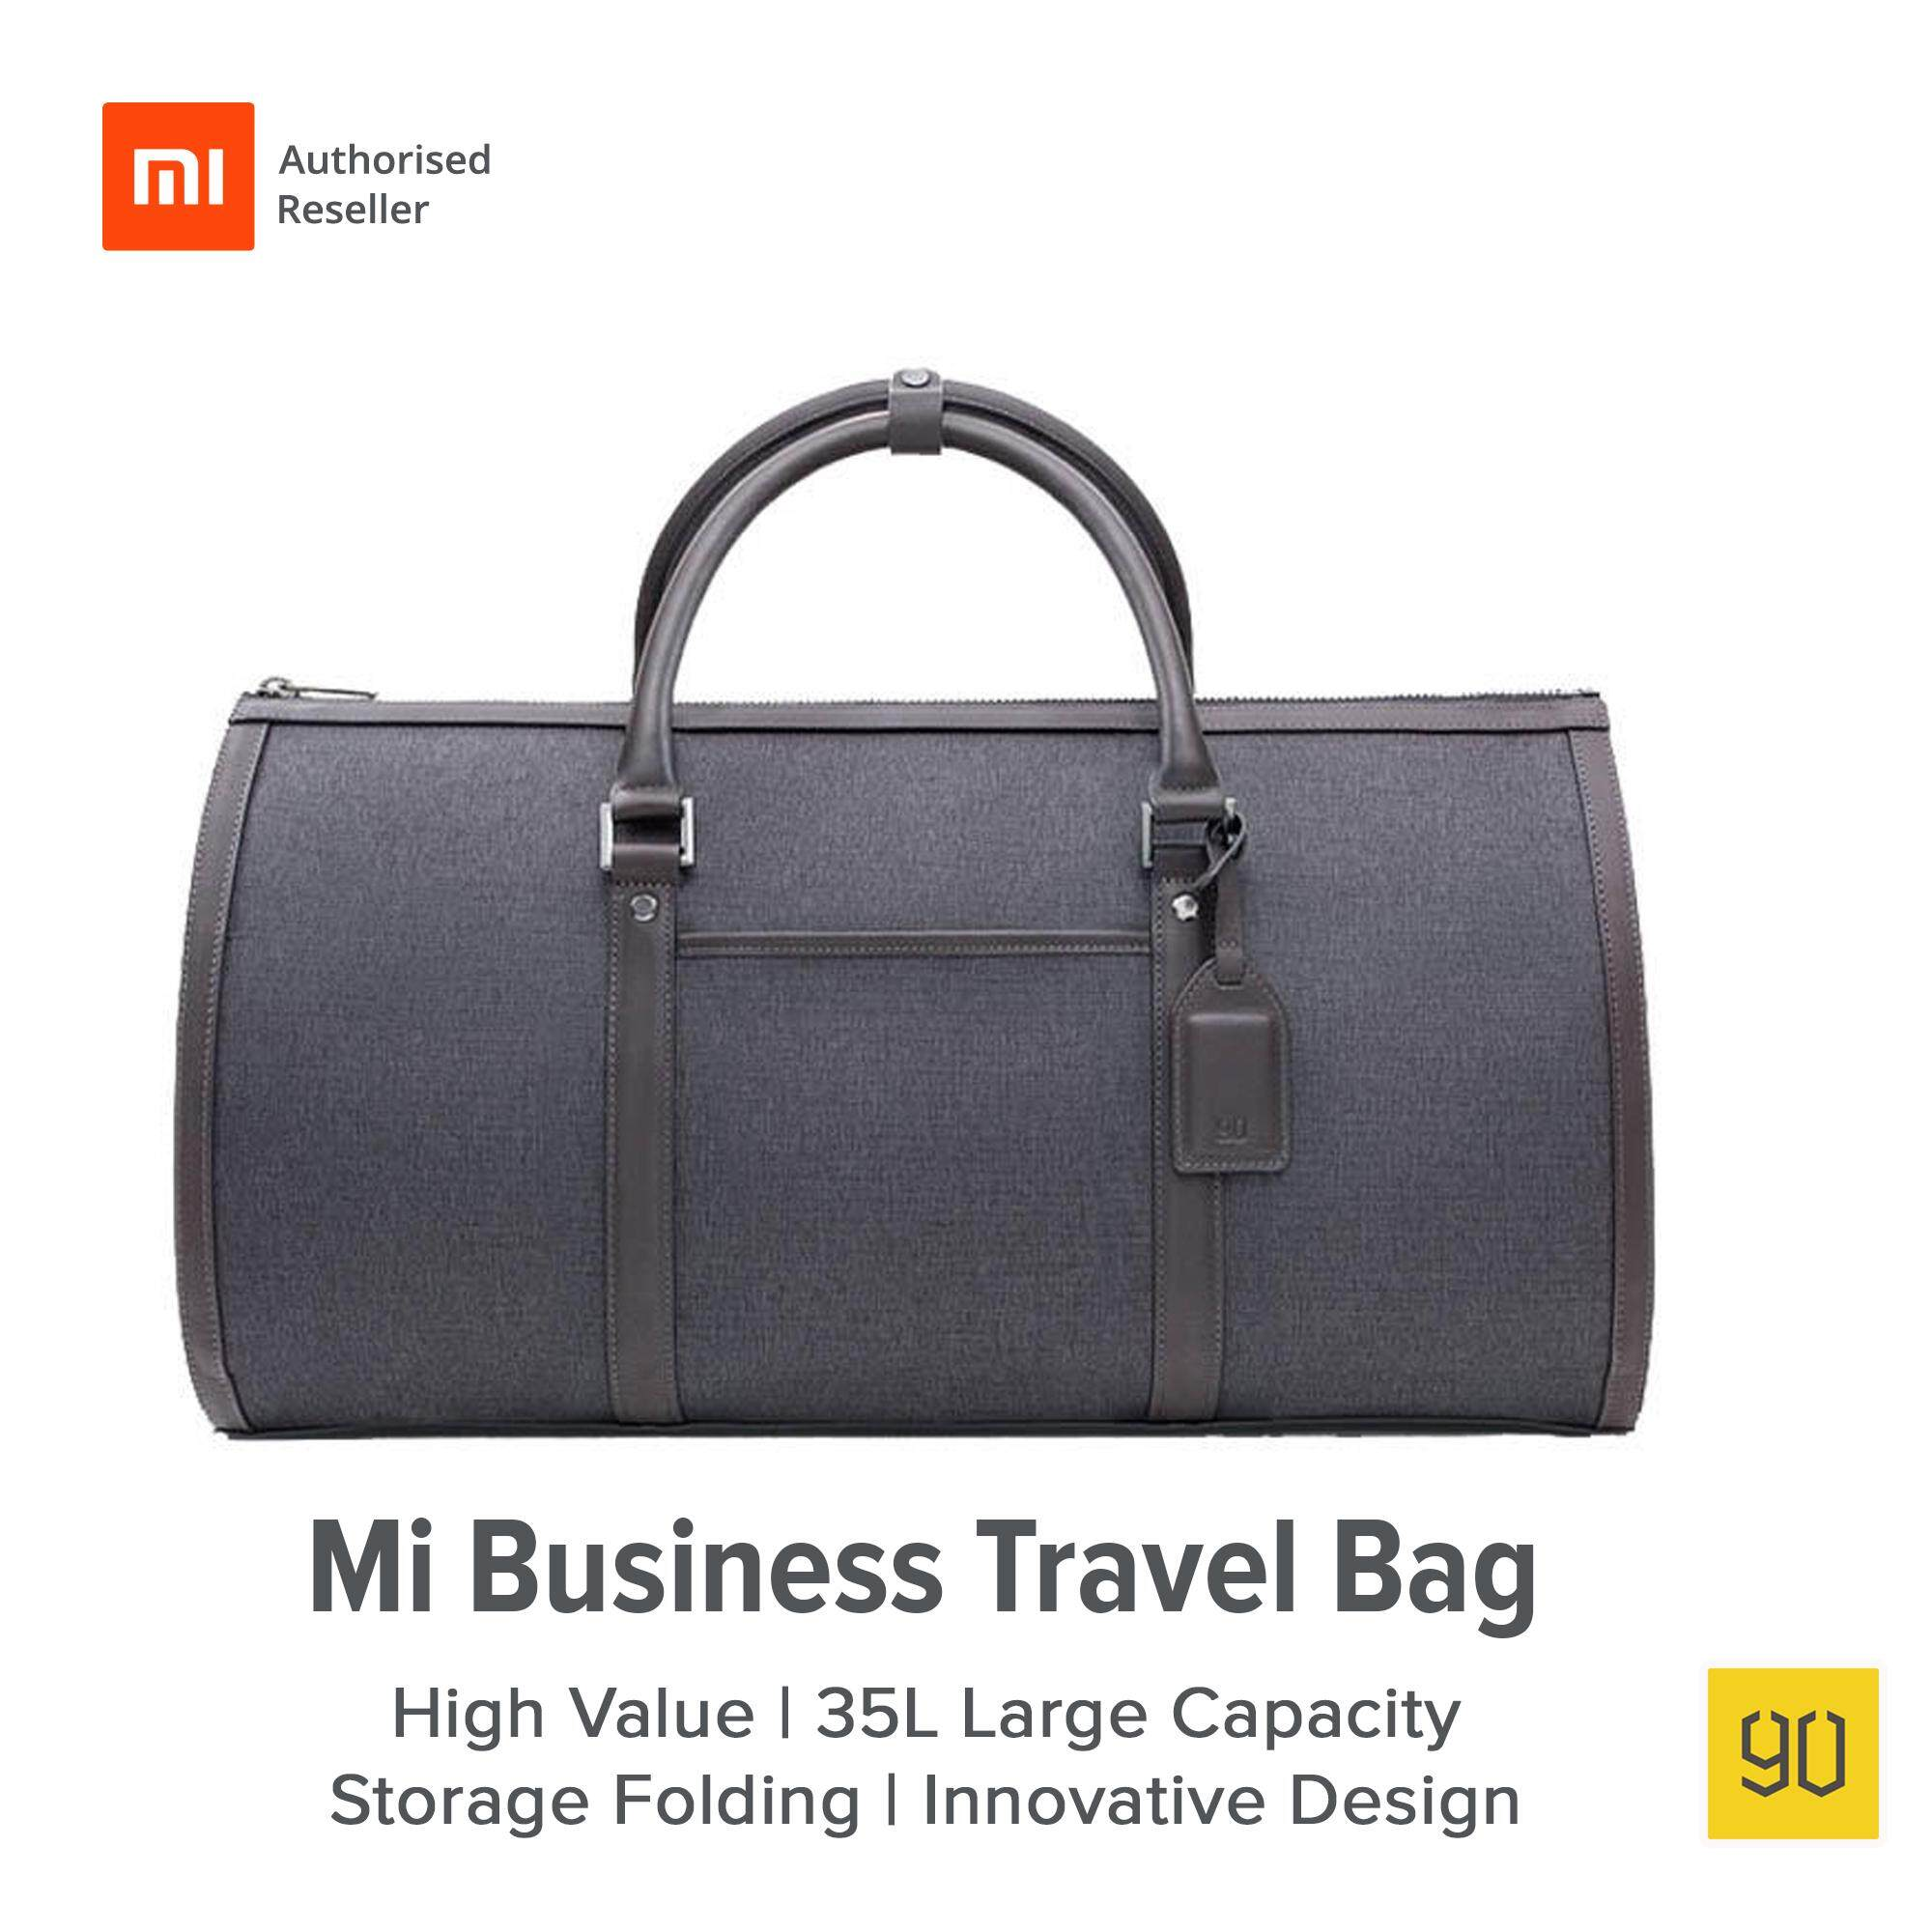 Mi Business Travel Bag